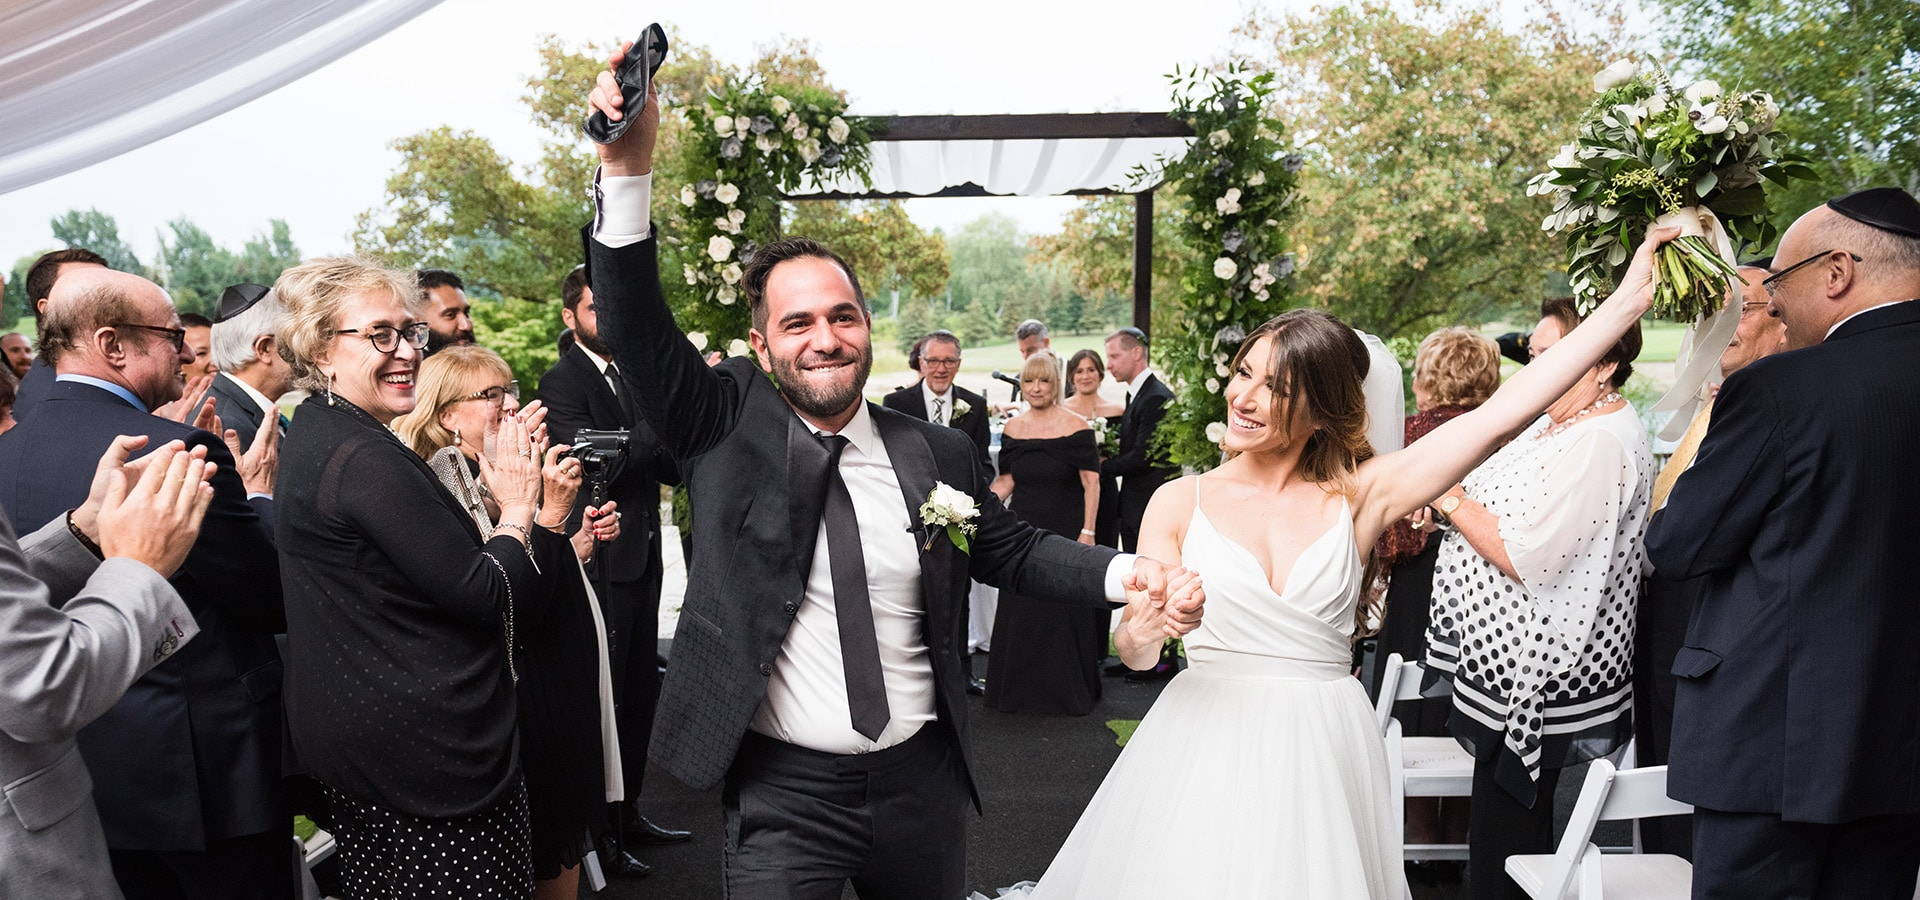 Hero image for Nicole and Shaaron's Modern-yet-Rustic Wedding at The Manor